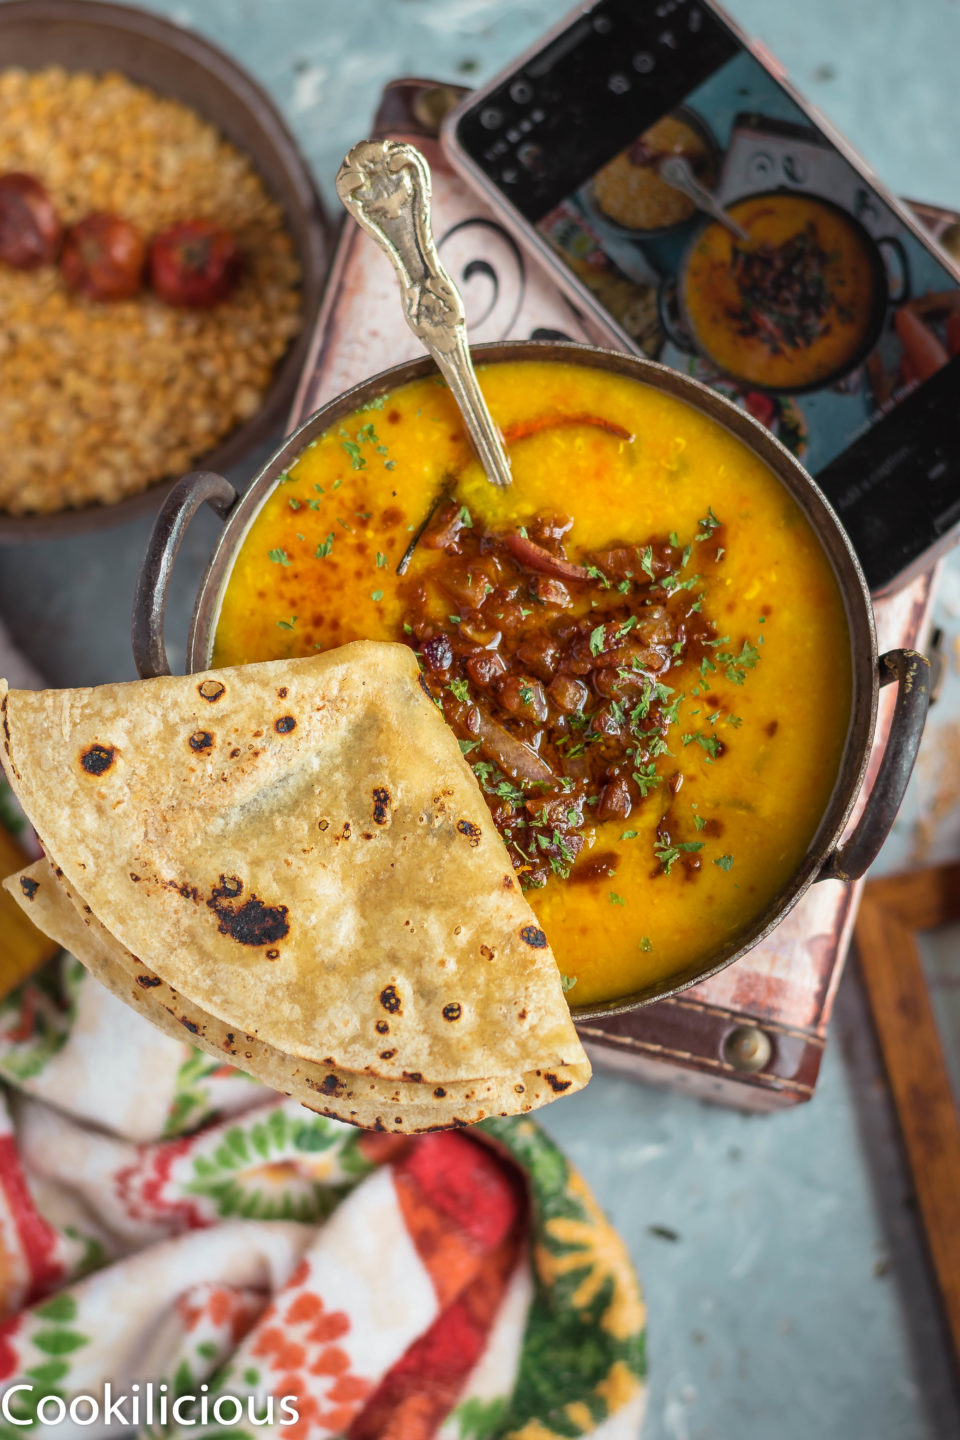 Roasted Lentils & Carrot Dal With Spinach in a kadai with a folded chapati next to it